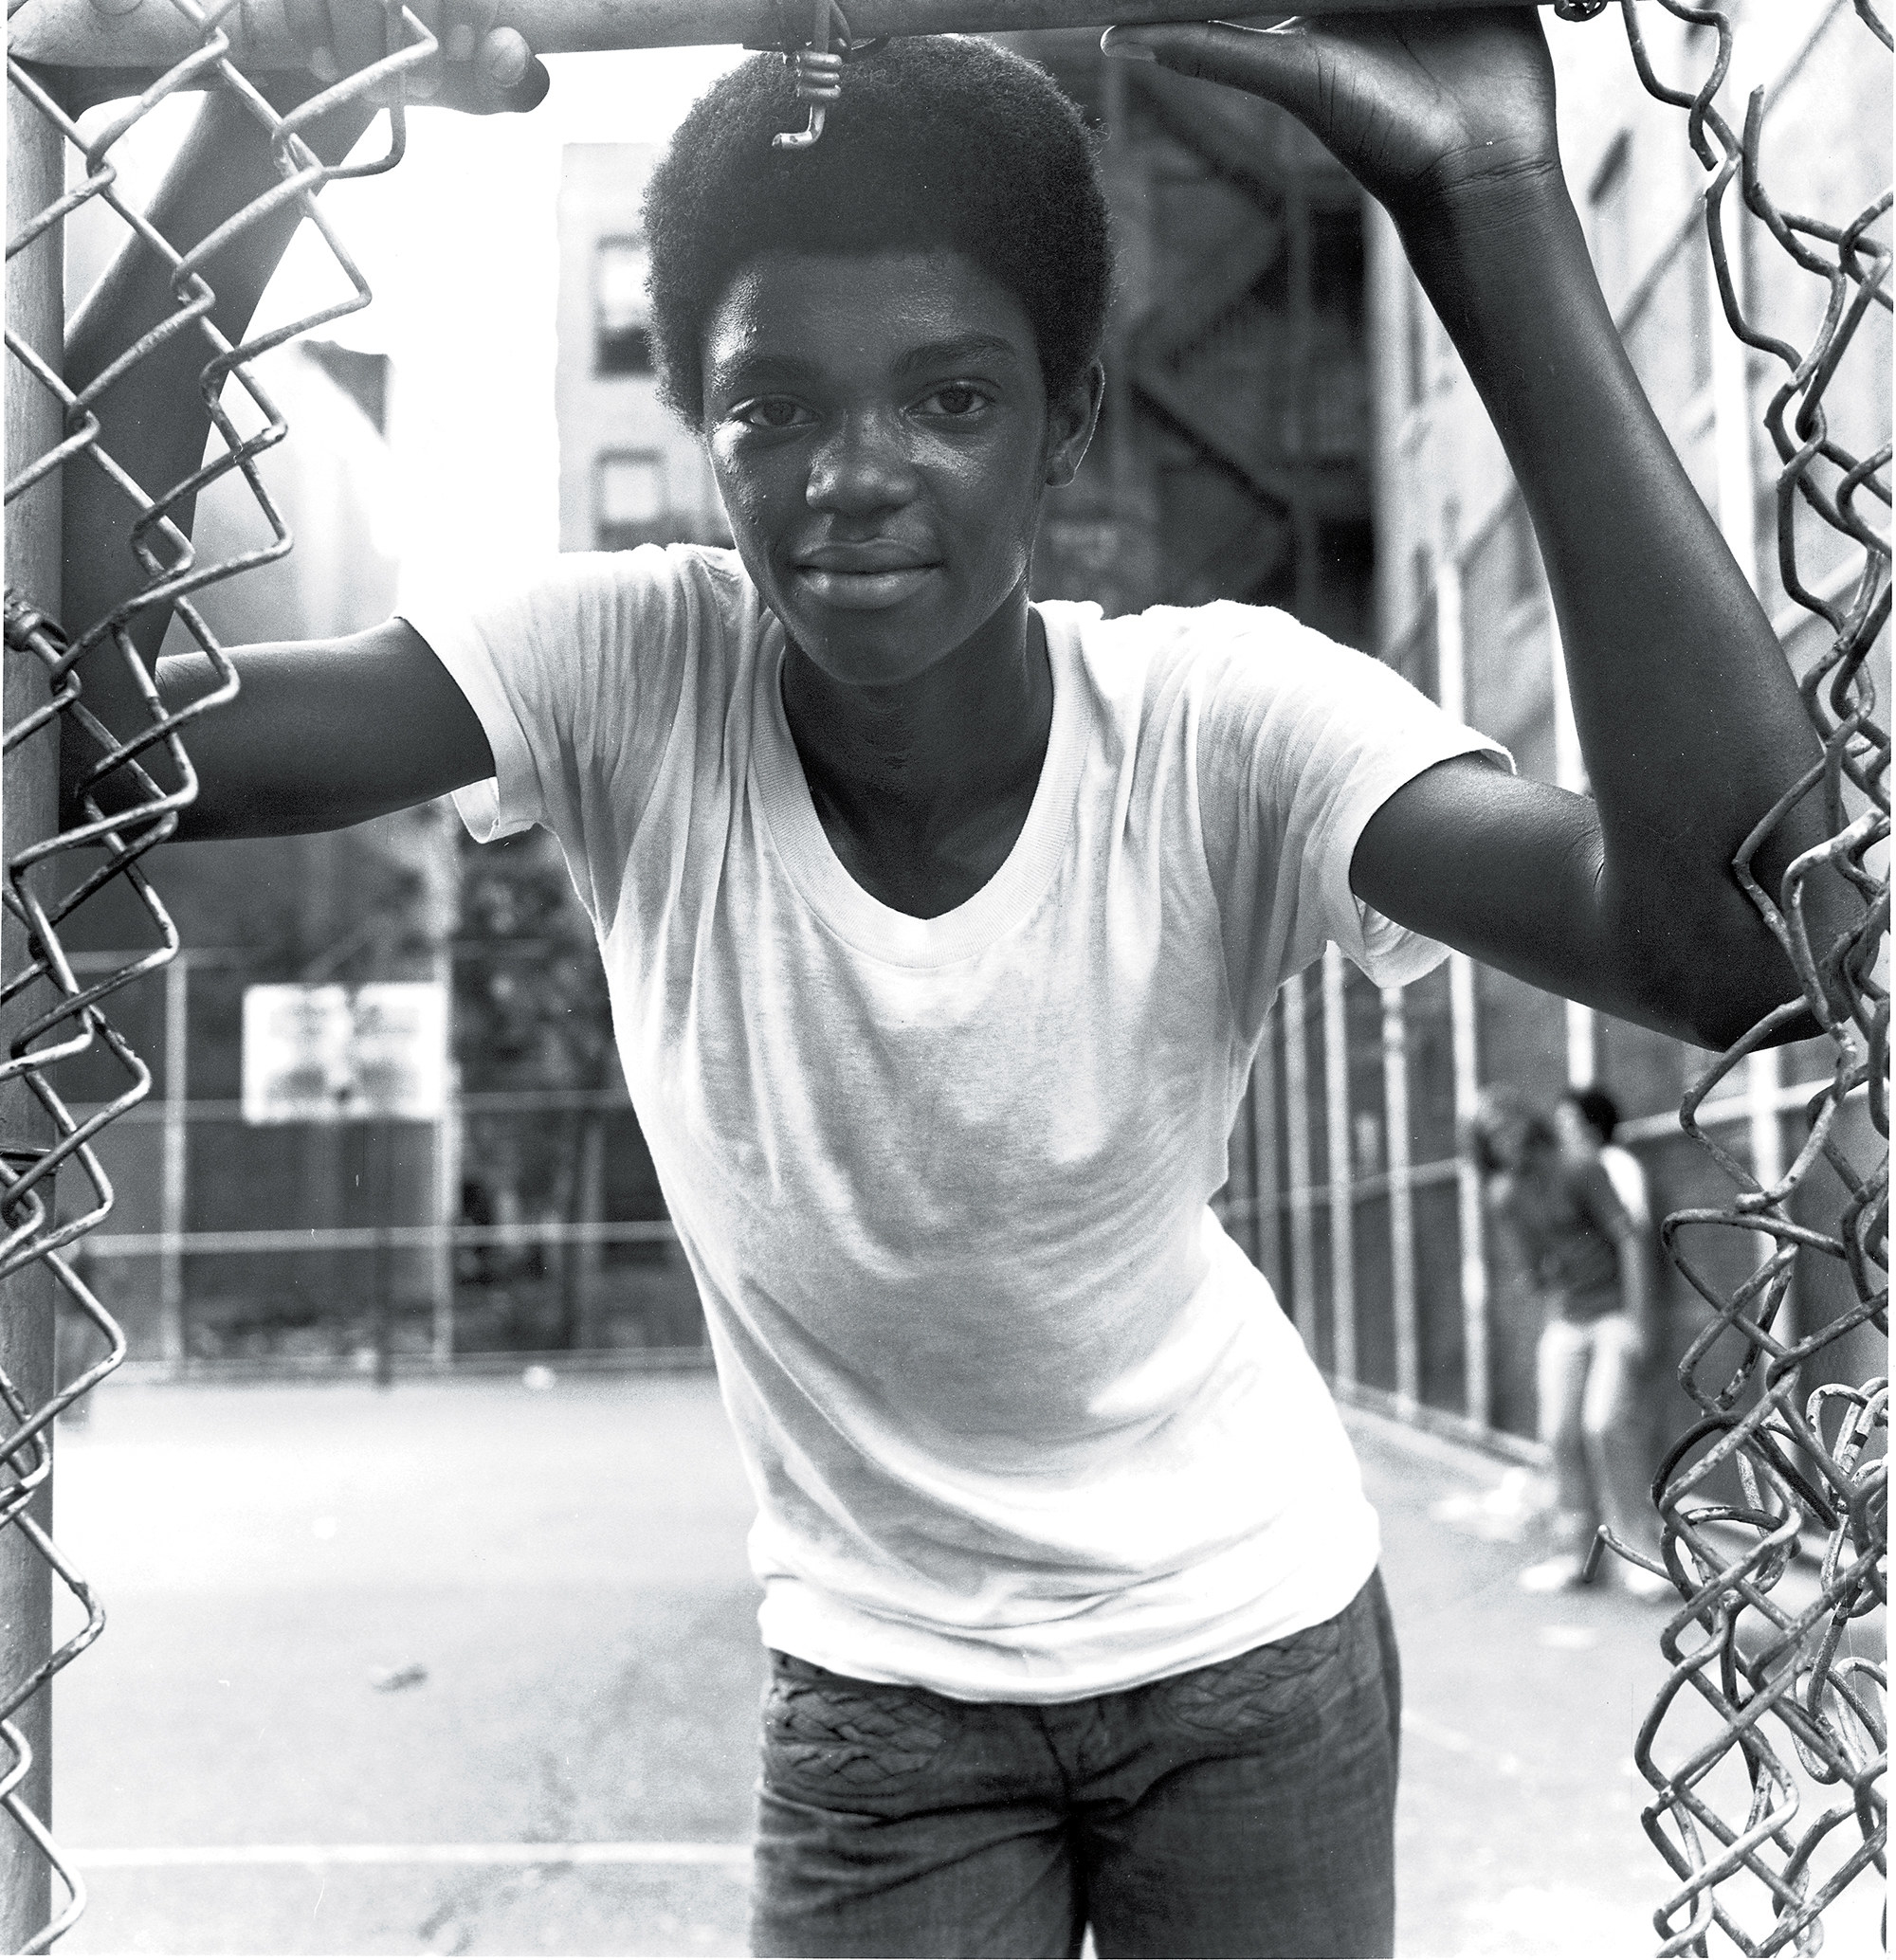 A young Black person smiles and stands by the side of a basketball court while looking through a gap in a chain-link fence